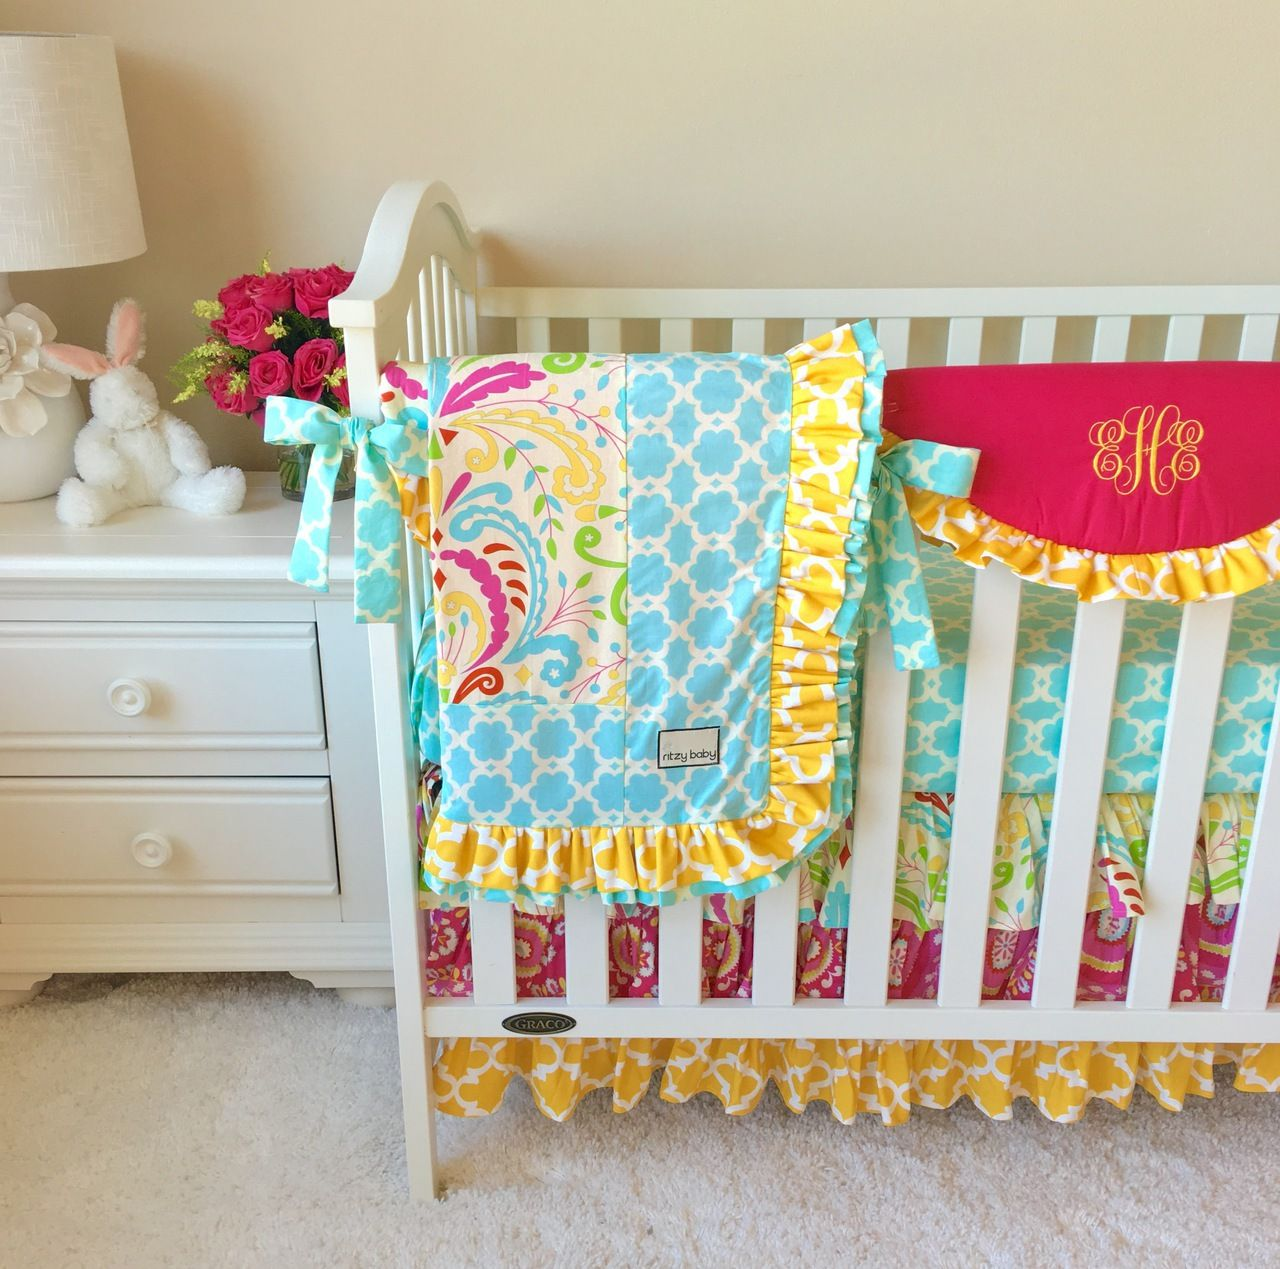 Gocrib adventure crib for sale - Sujata Mint Yellow And Pink Bumperless Crib Bedding